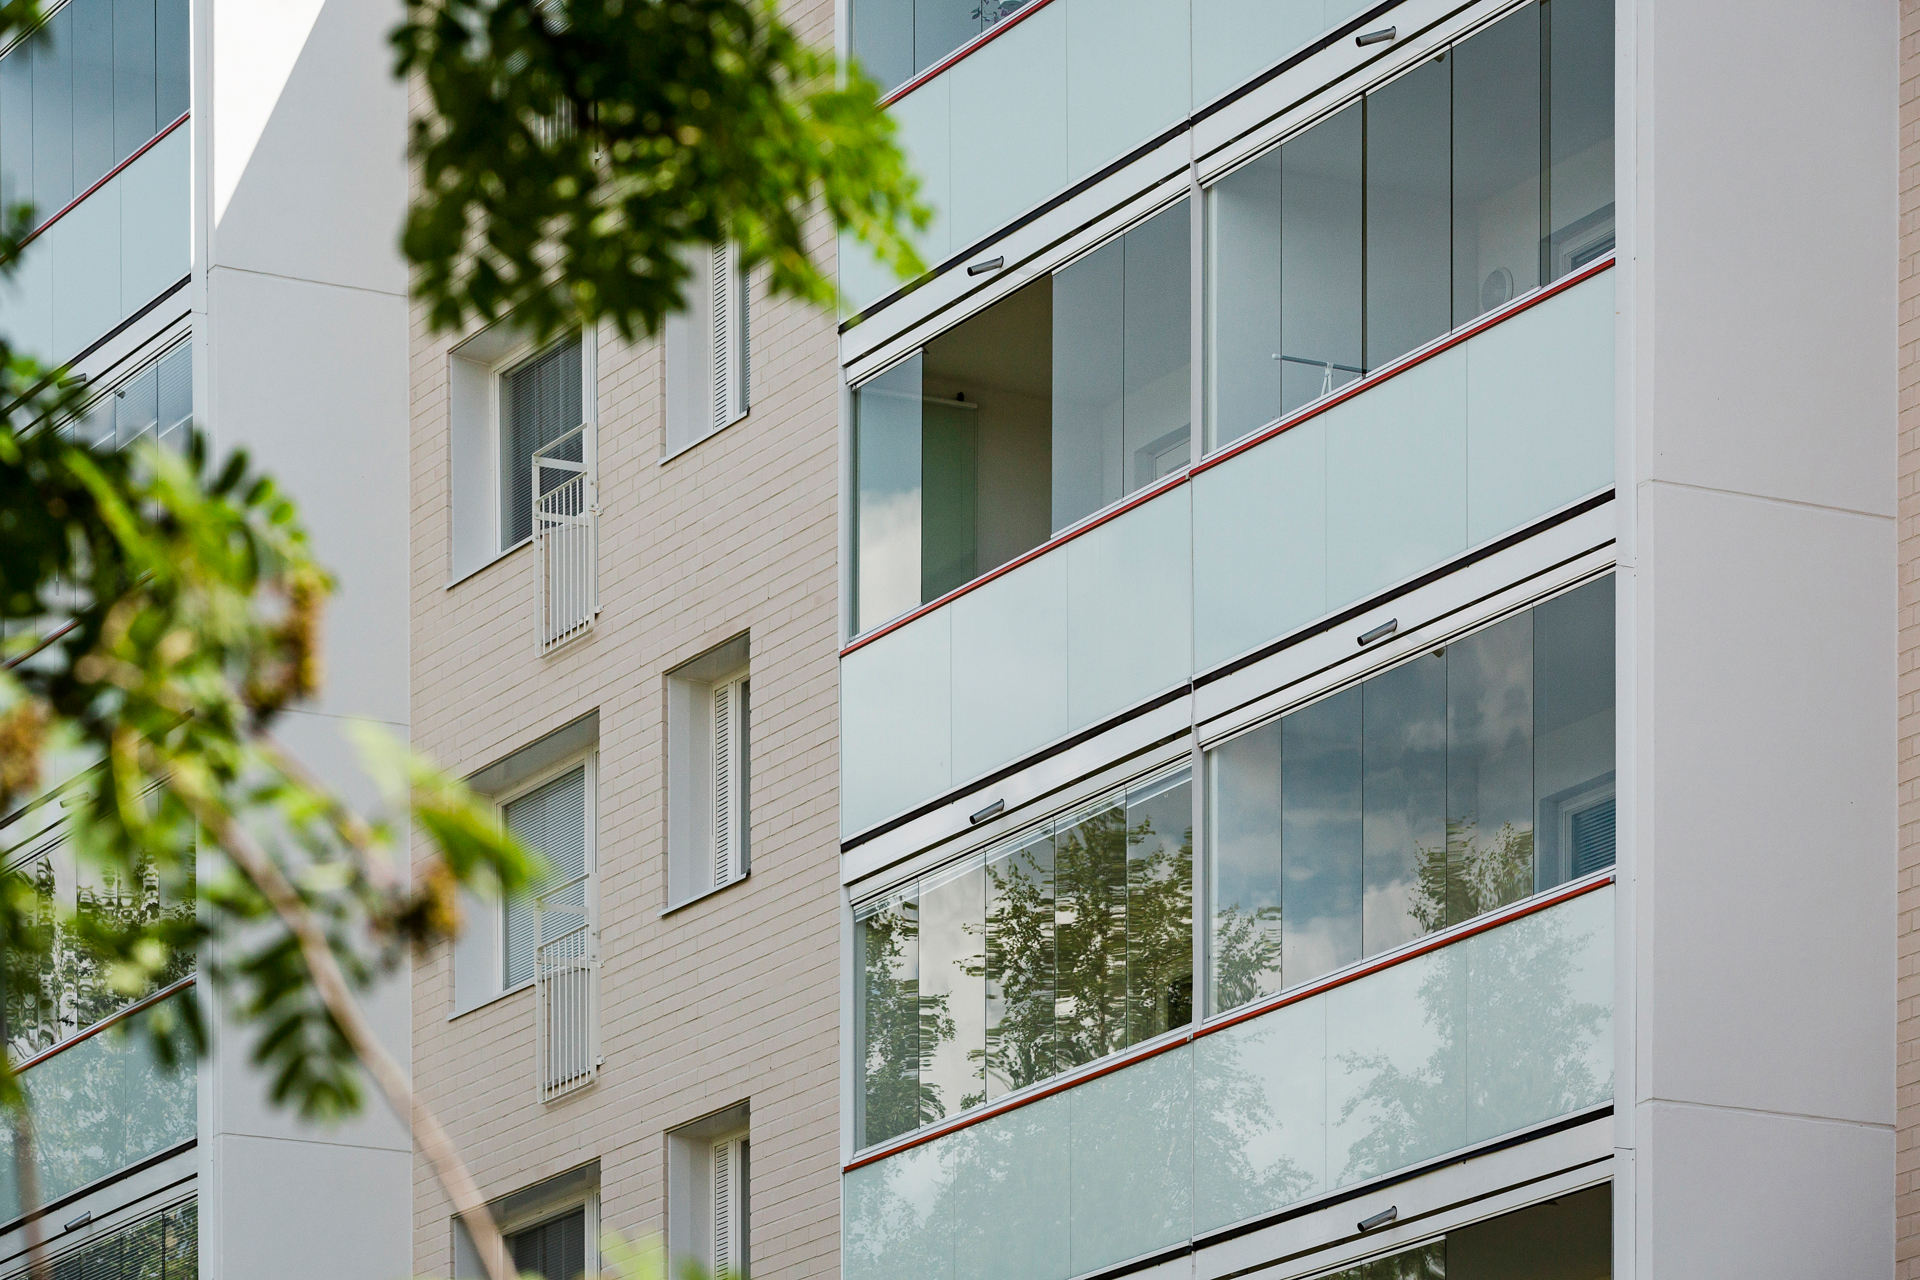 lumon canada, balcony glass system, saving energy costs, reducing maintenance costs, preserving building exterior